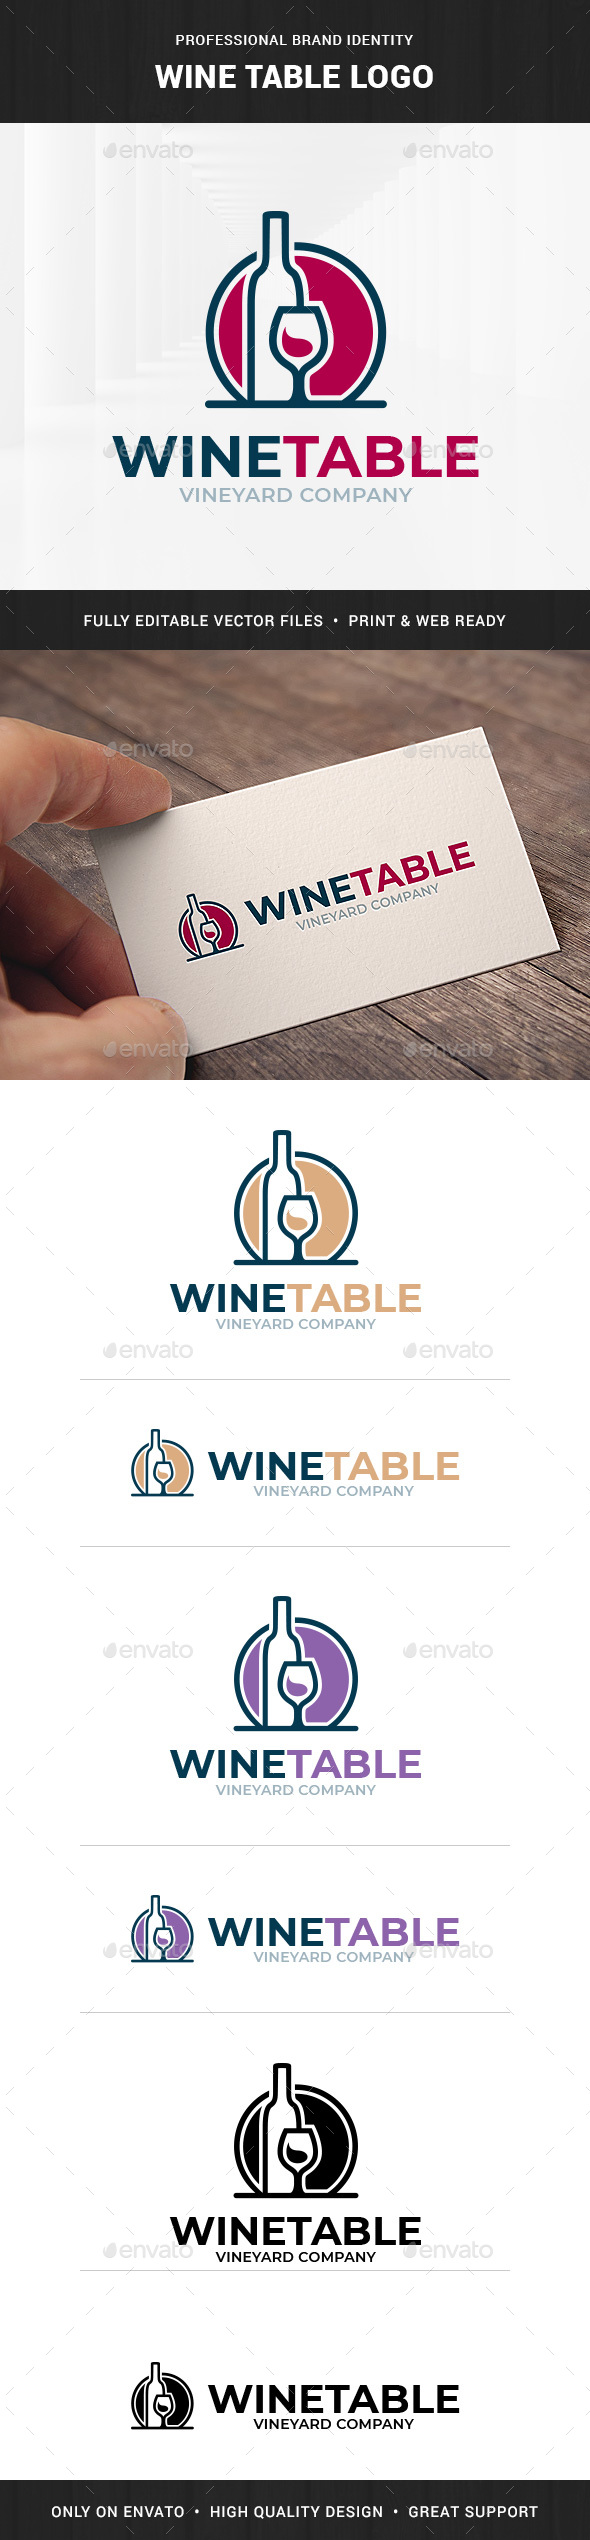 Wine Table Logo Template